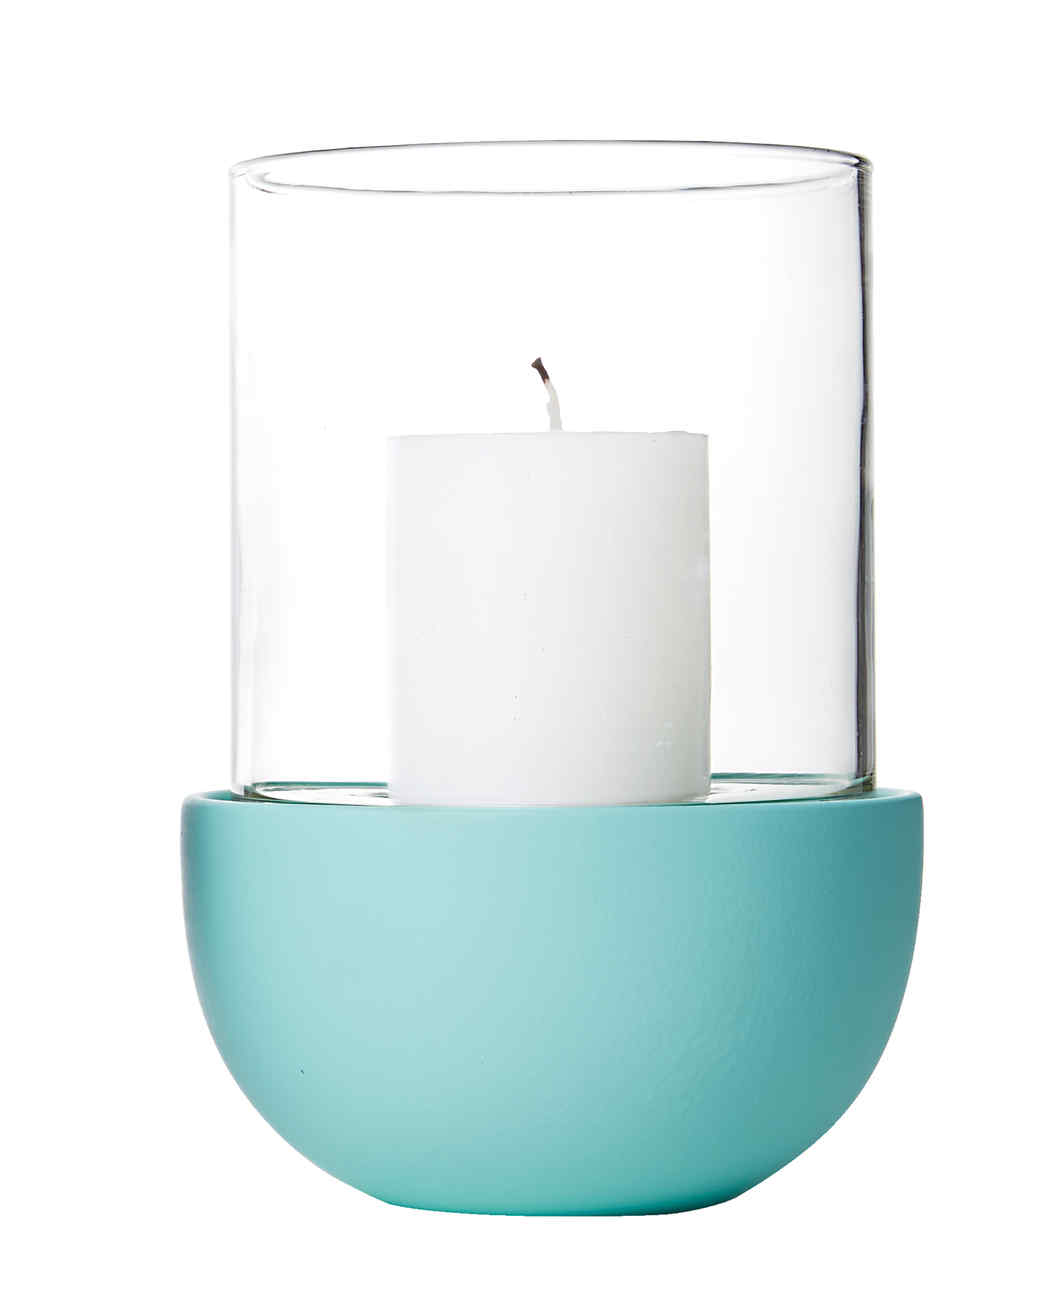 candle-03-d112094.jpg